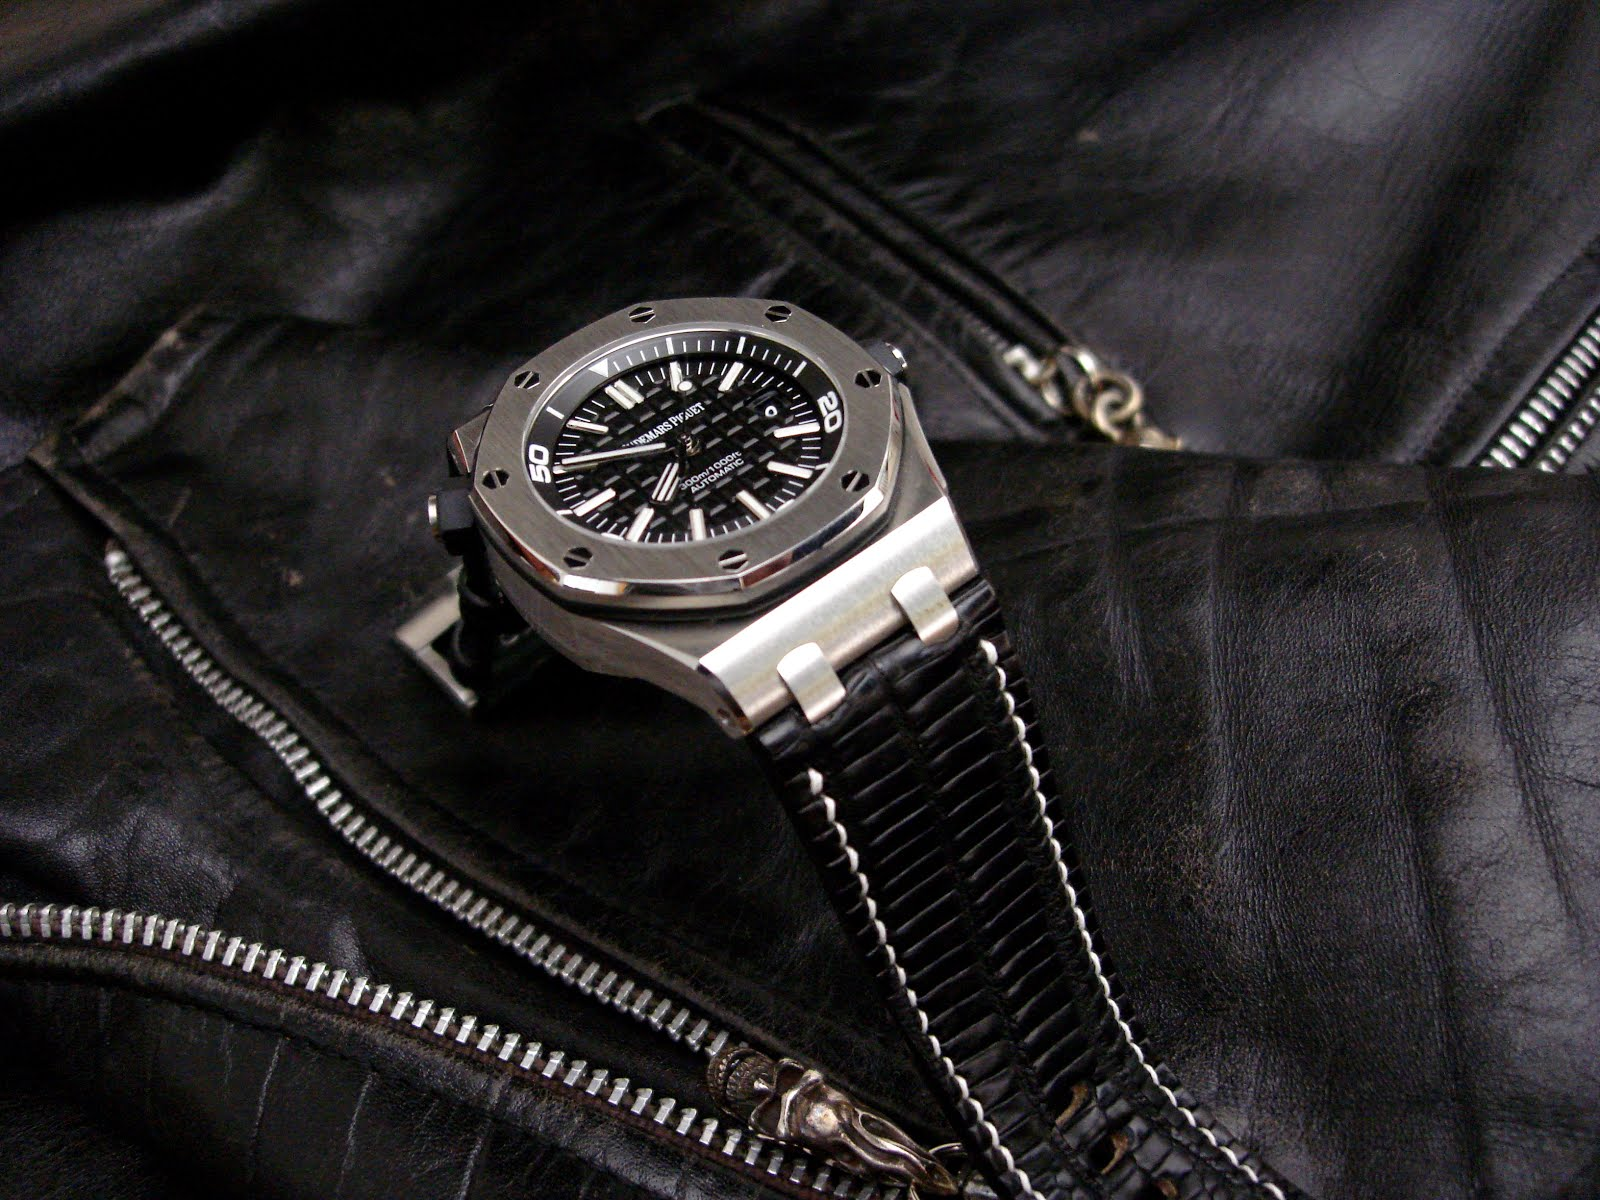 Audemars Piguet ROOS Diver on Teju Lizard